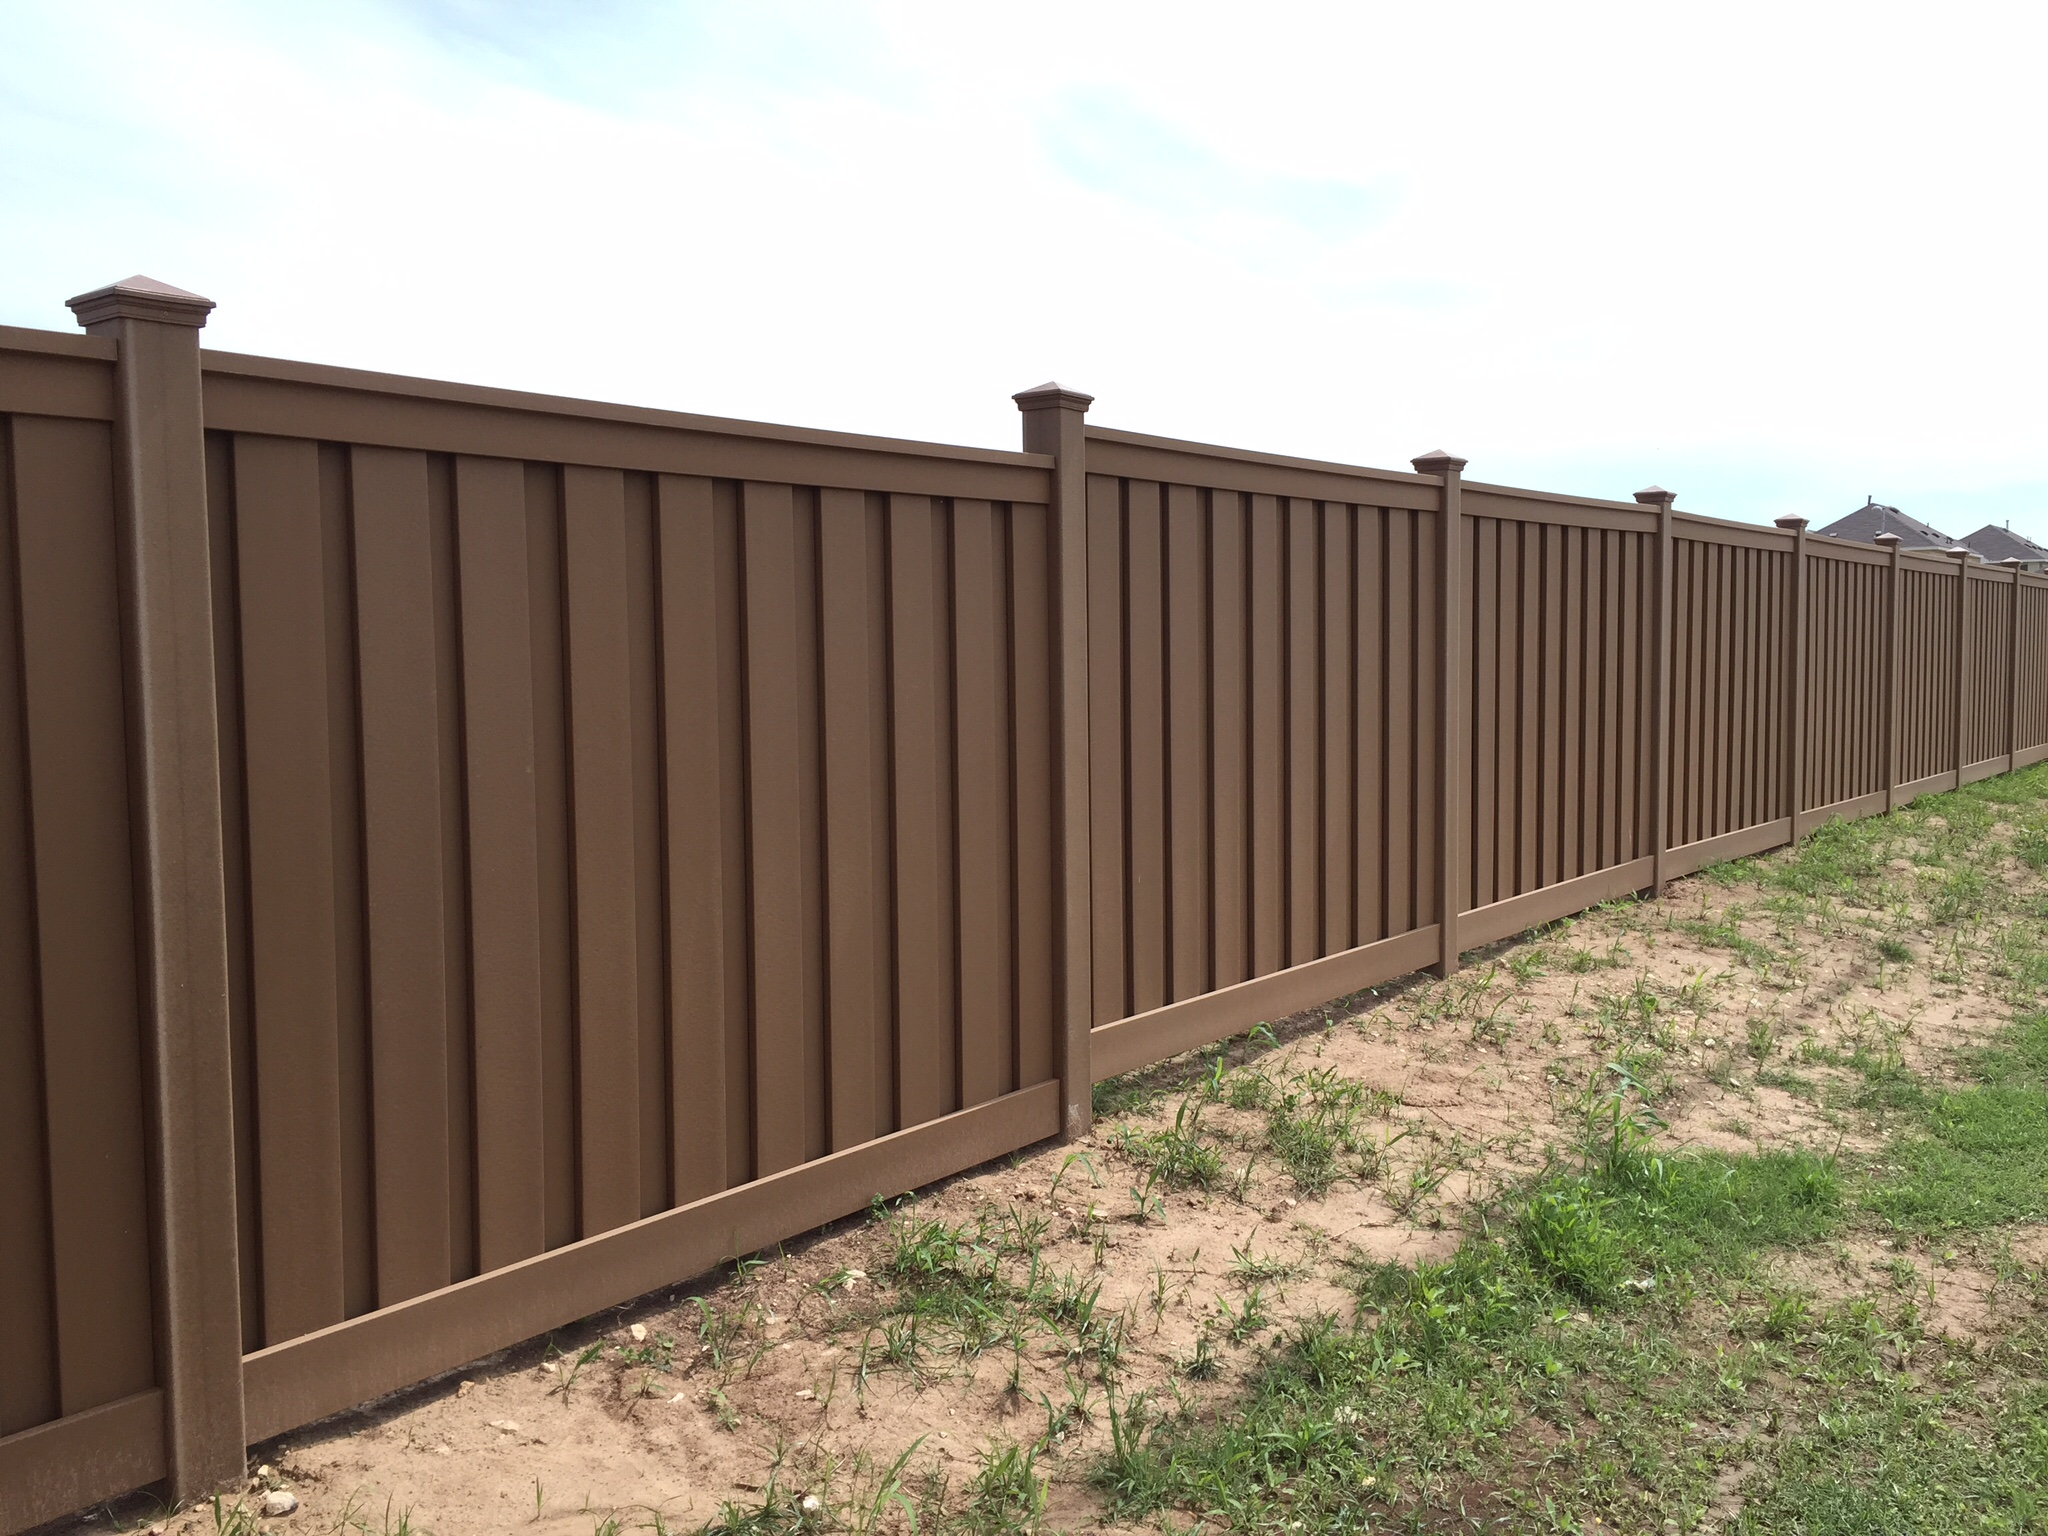 Austin texas archives trex fencing the composite alternative to fence around utility pole trex fencing installed in austins colony austin texas baanklon Image collections